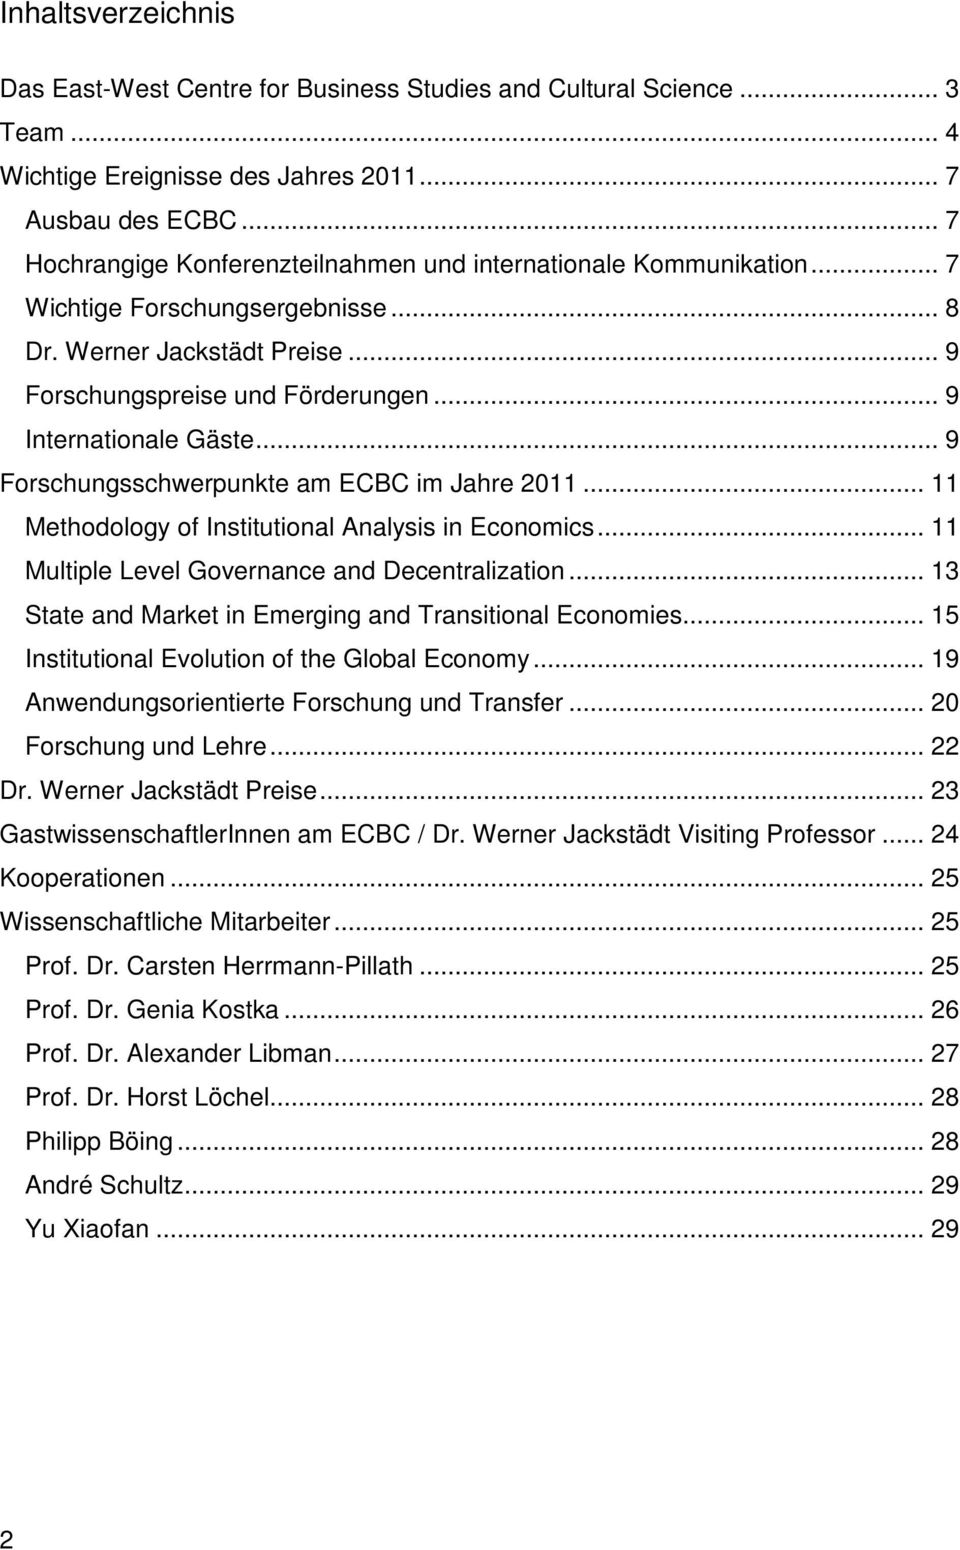 .. 9 Forschungsschwerpunkte am ECBC im Jahre 2011... 11 Methodology of Institutional Analysis in Economics... 11 Multiple Level Governance and Decentralization.